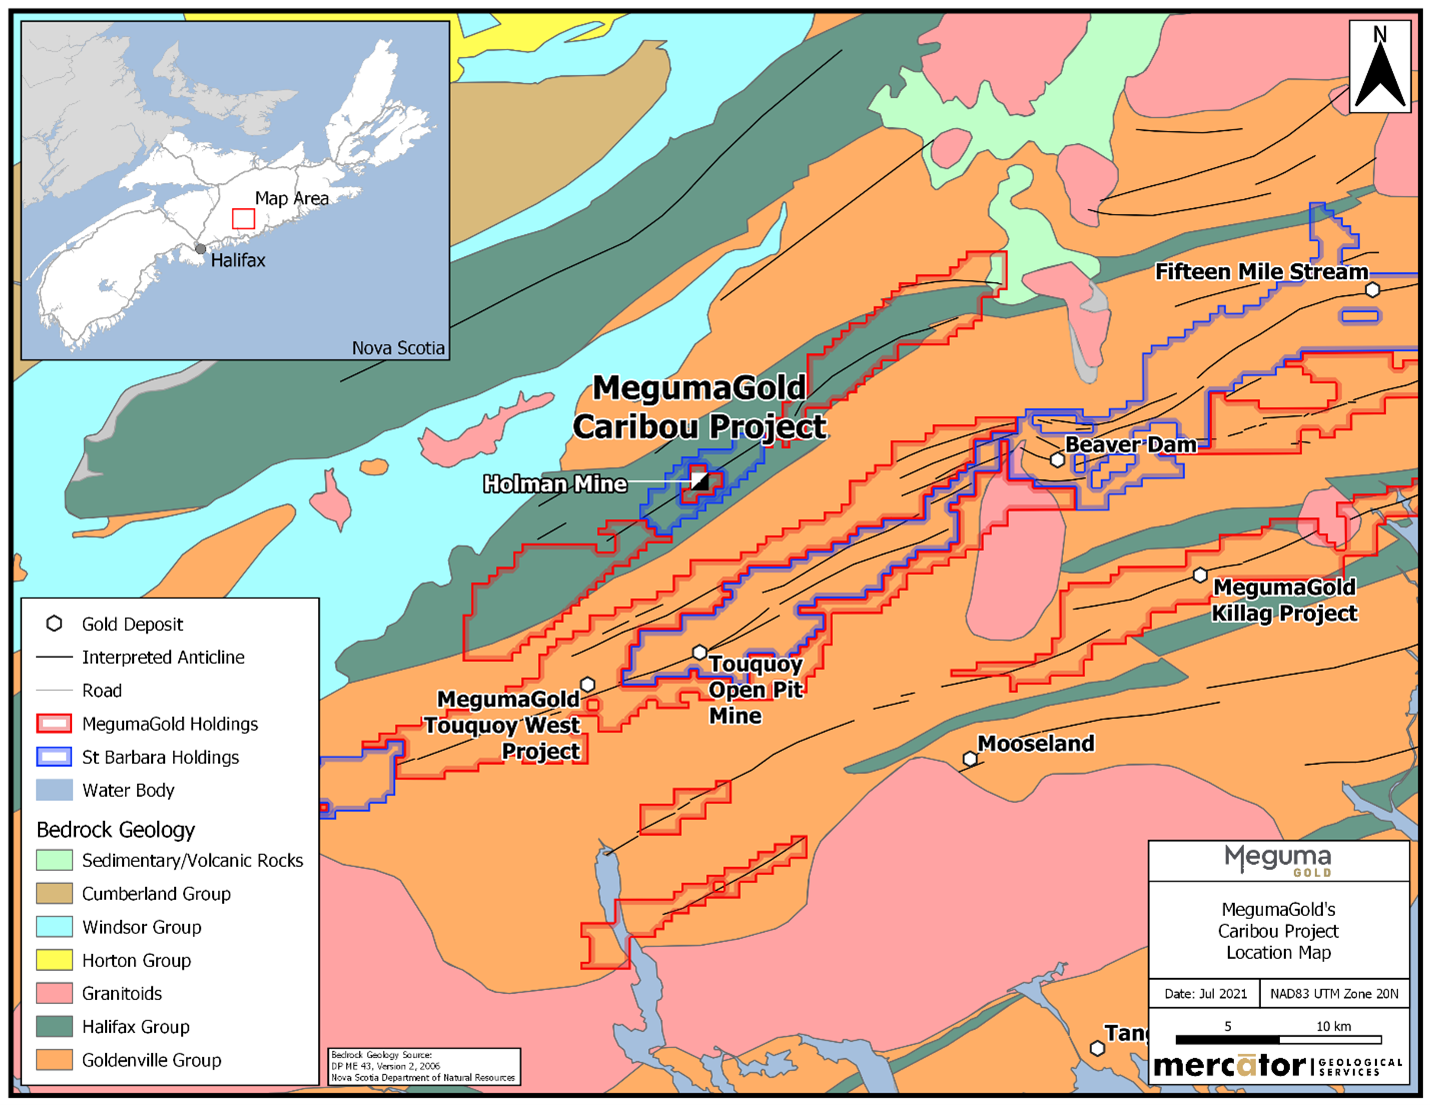 MegumaGold will Start Drilling soon at Caribou Gold Project in Nova Scotia